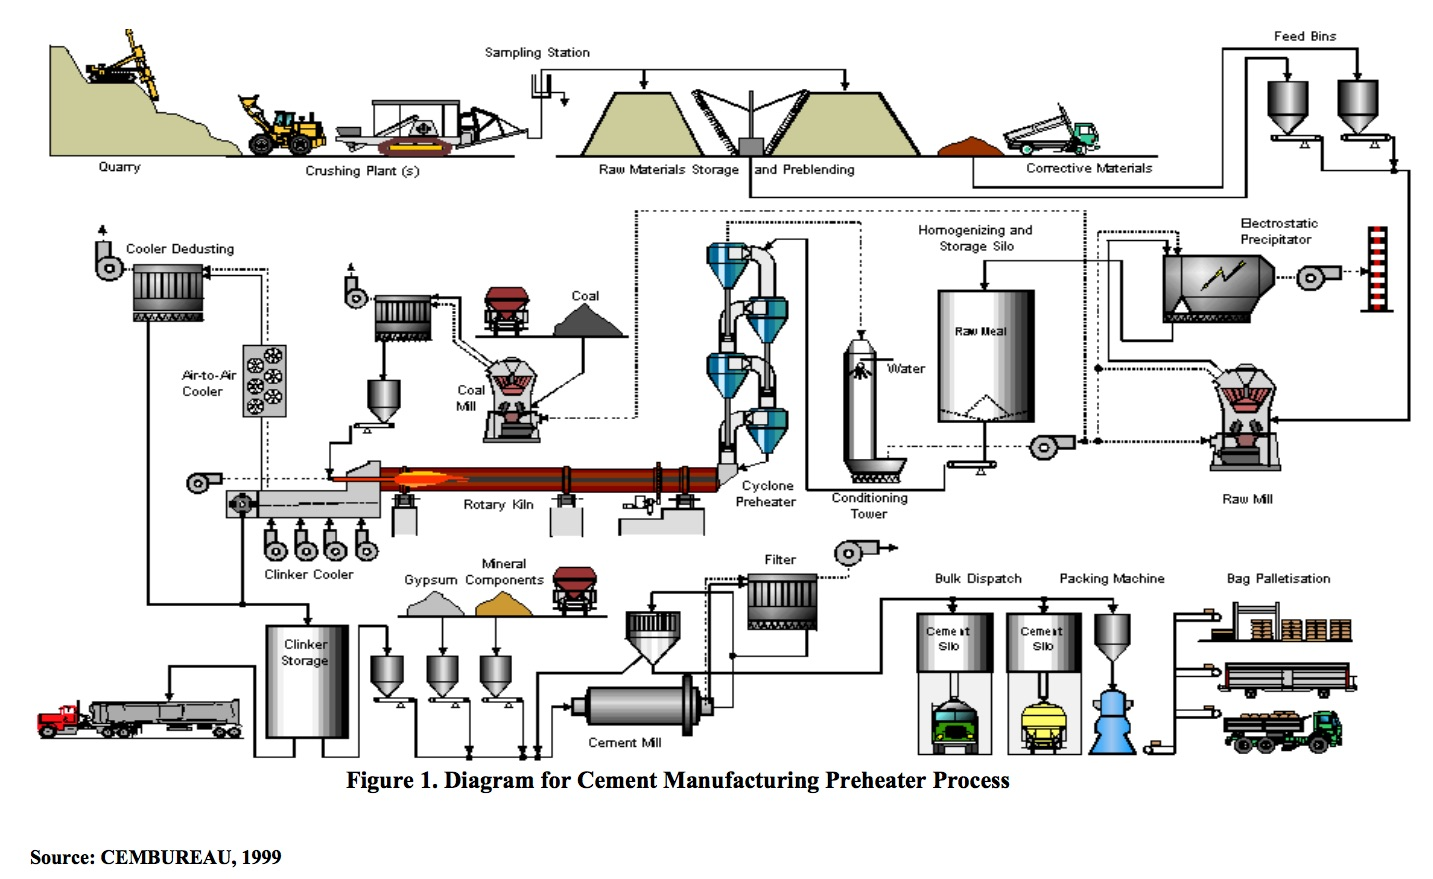 The cement manufacturing process process systems design blog cement is a finely ground powder which when mixed with water forms a hardening paste of calcium silicate hydrates and calcium aluminate hydrates nvjuhfo Gallery